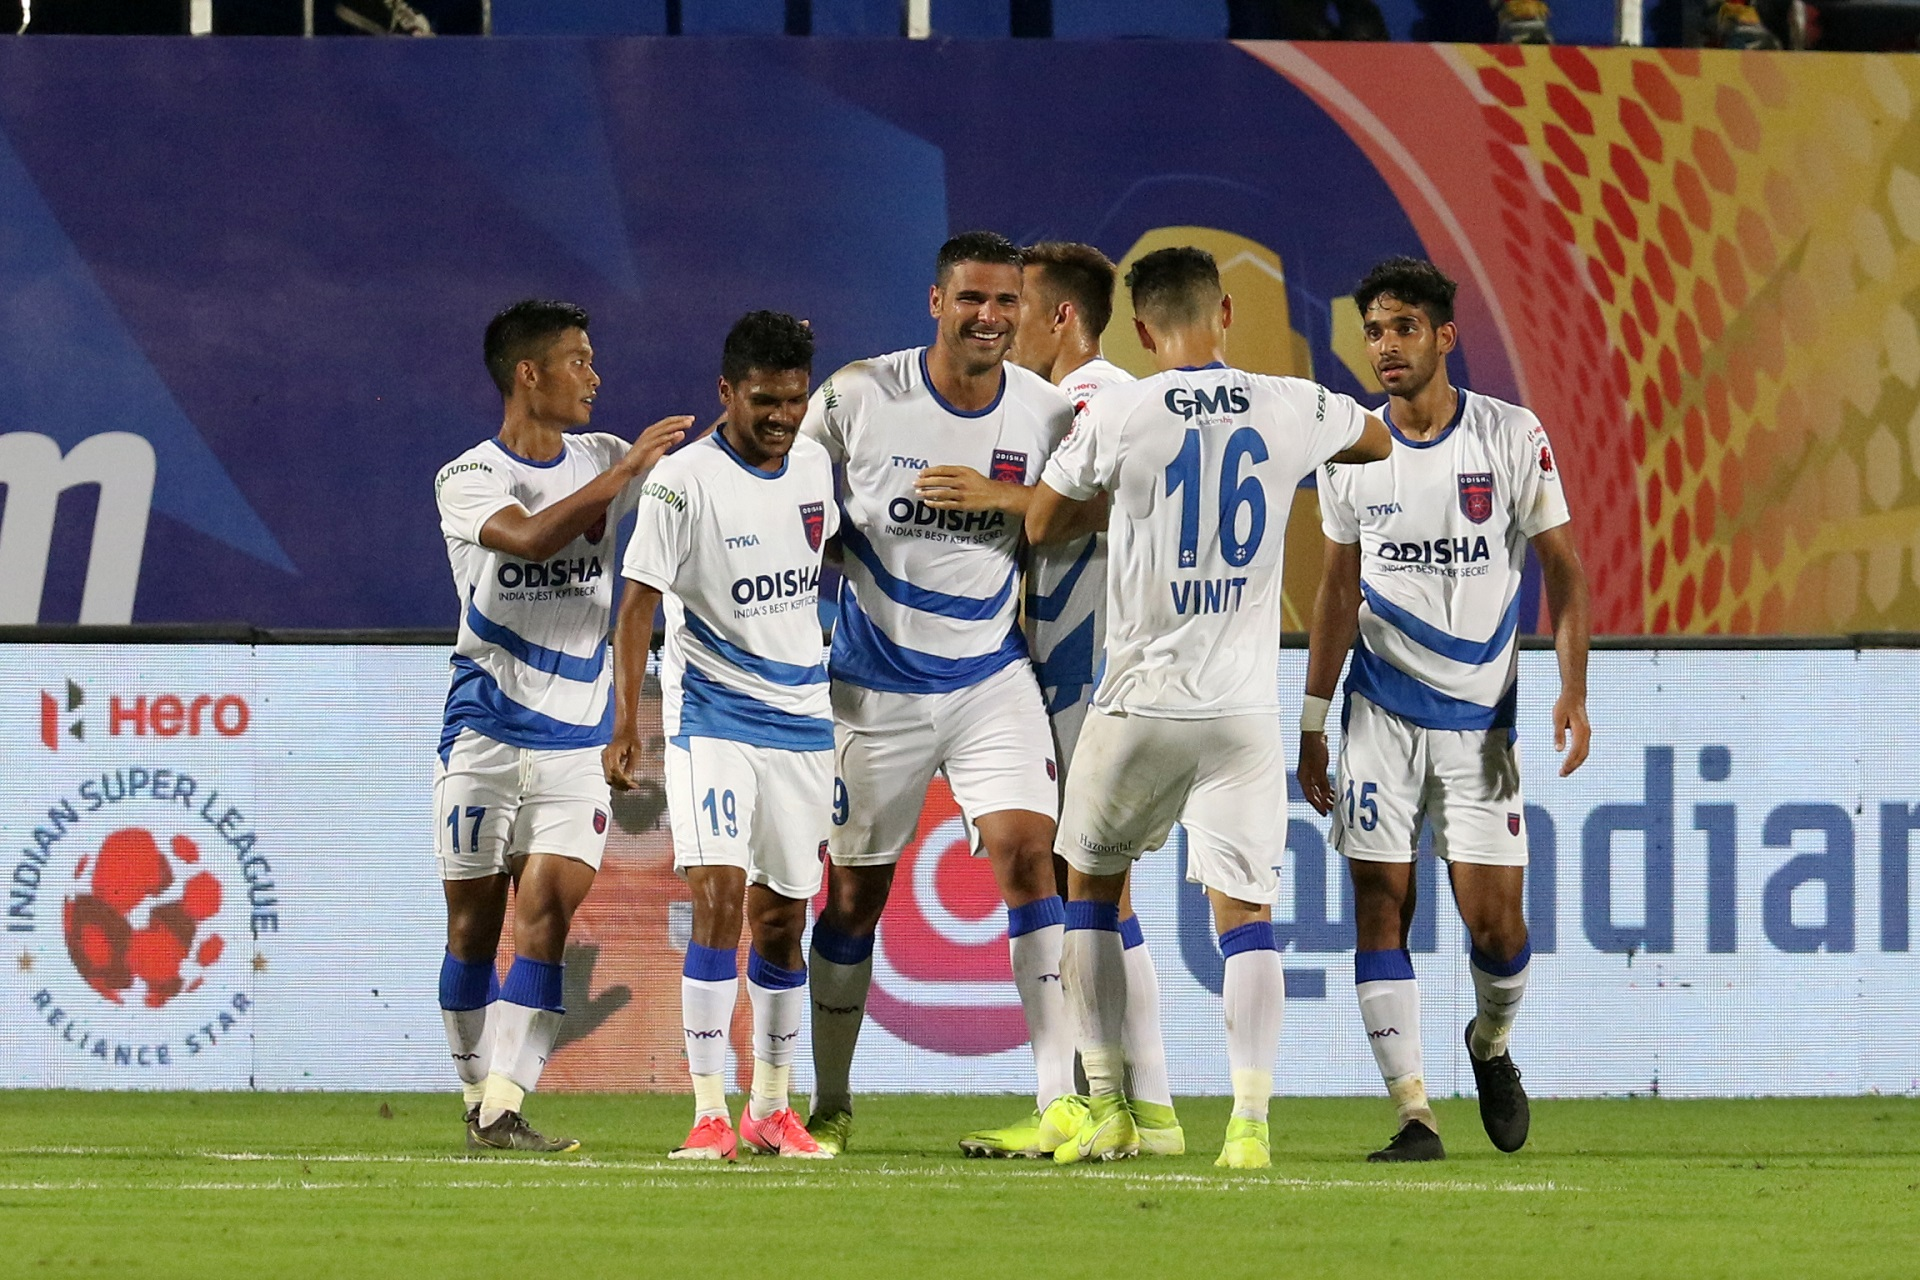 ISL 2019: Can Odisha stop high-flying ATK?